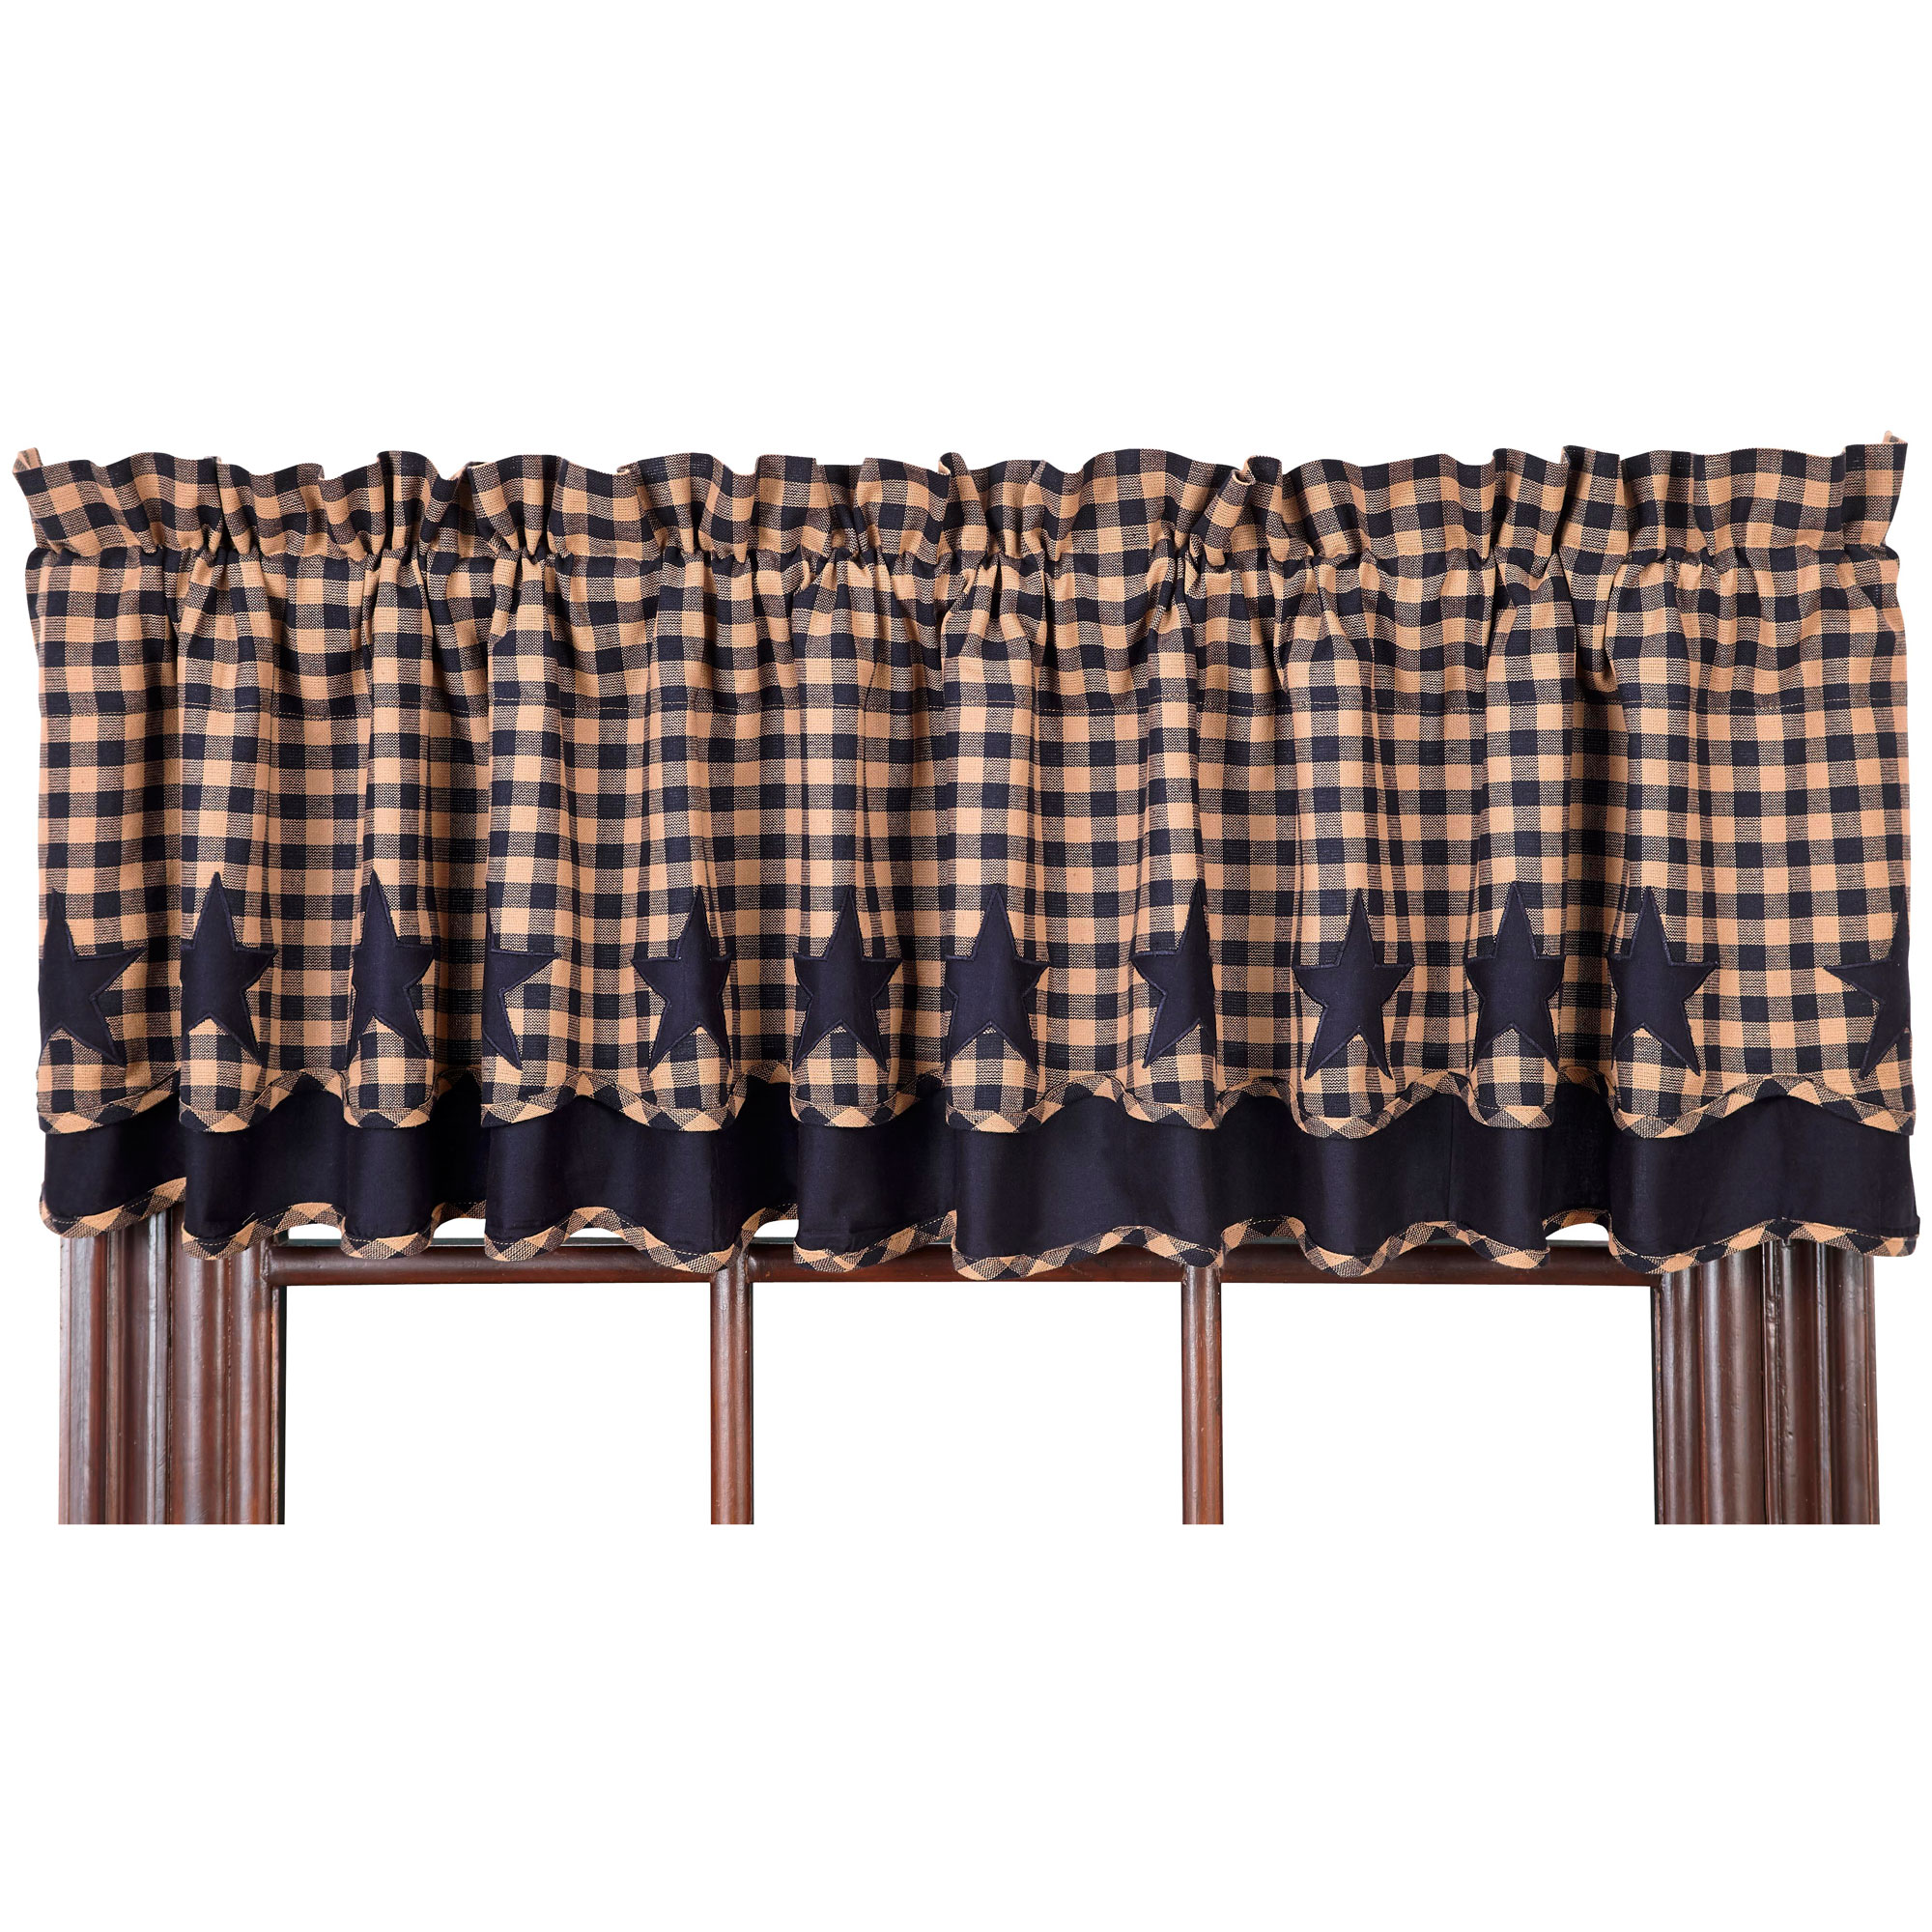 Star And Check Scalloped Lined Layered Valance Navy Black